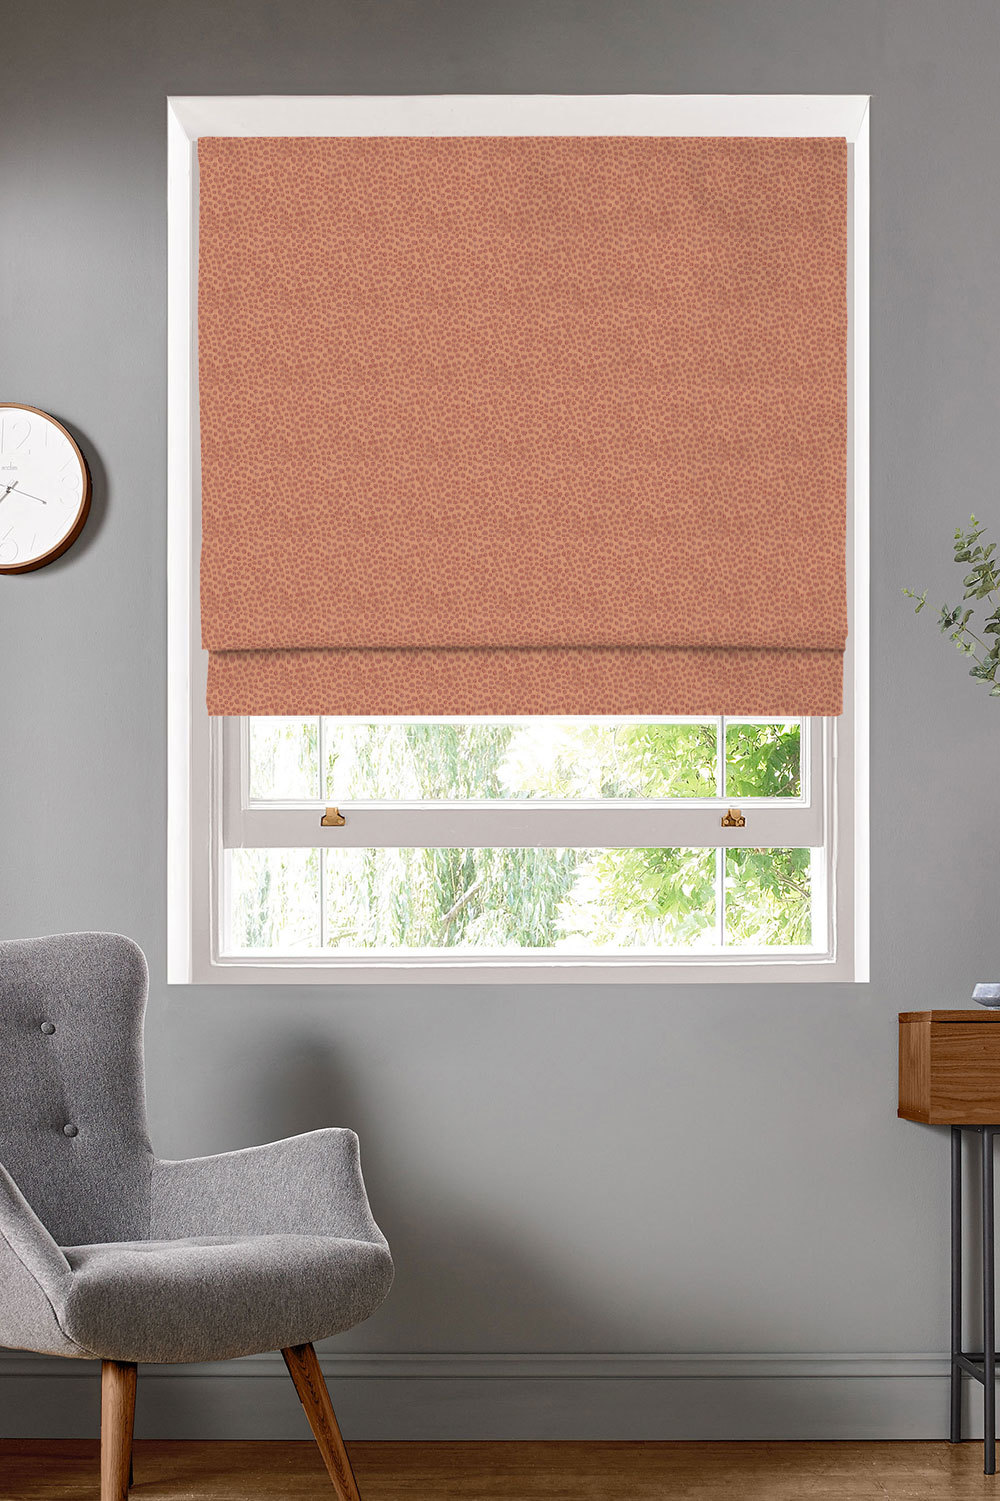 Furley Ginger Roman Blinds